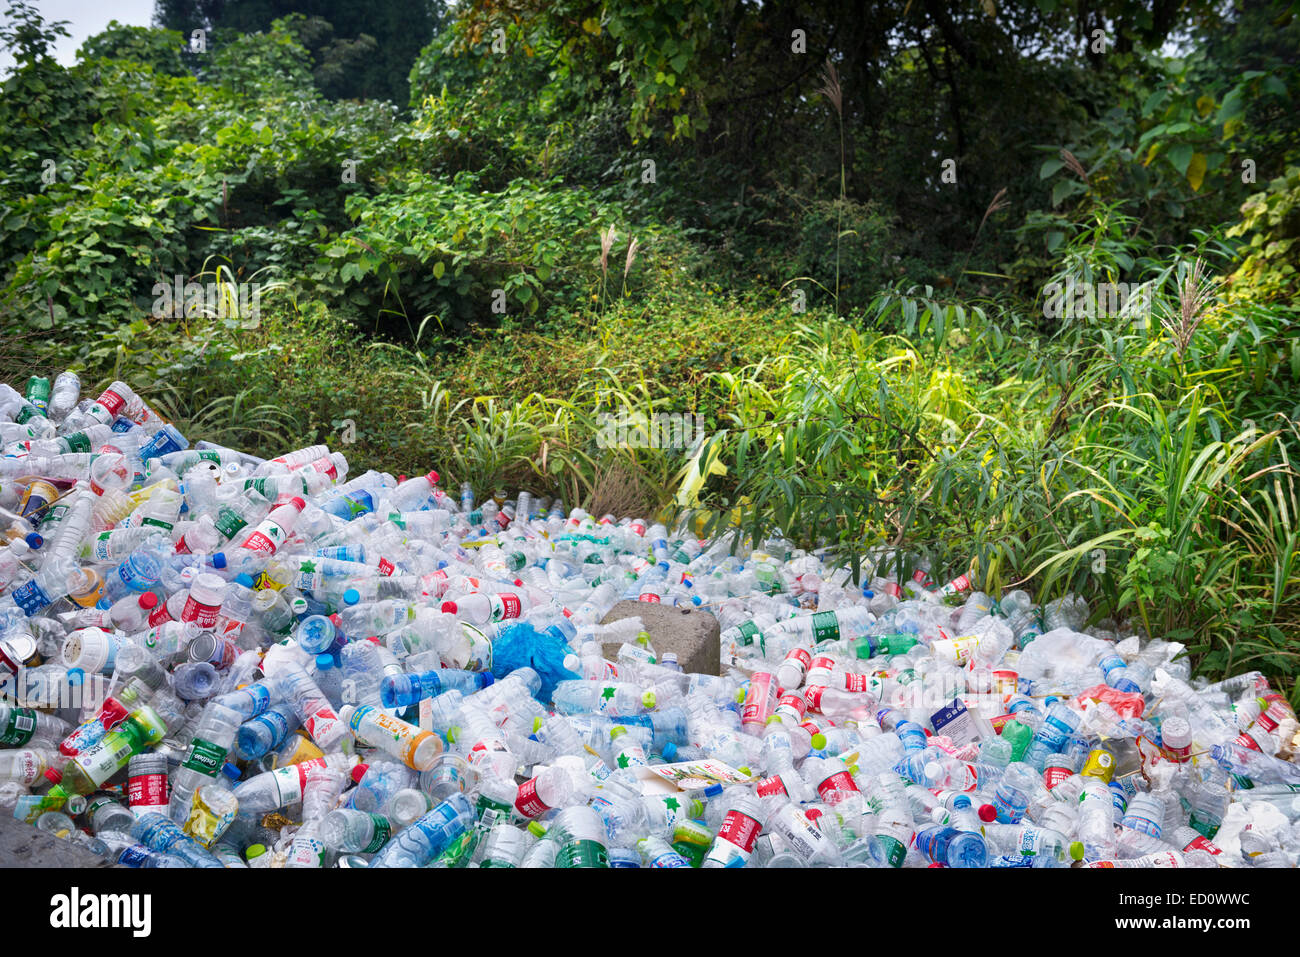 Empty plastic bottles piled up in a park at on of the major tourist attractions in Zhanjiajie, China 2014 Stock Photo